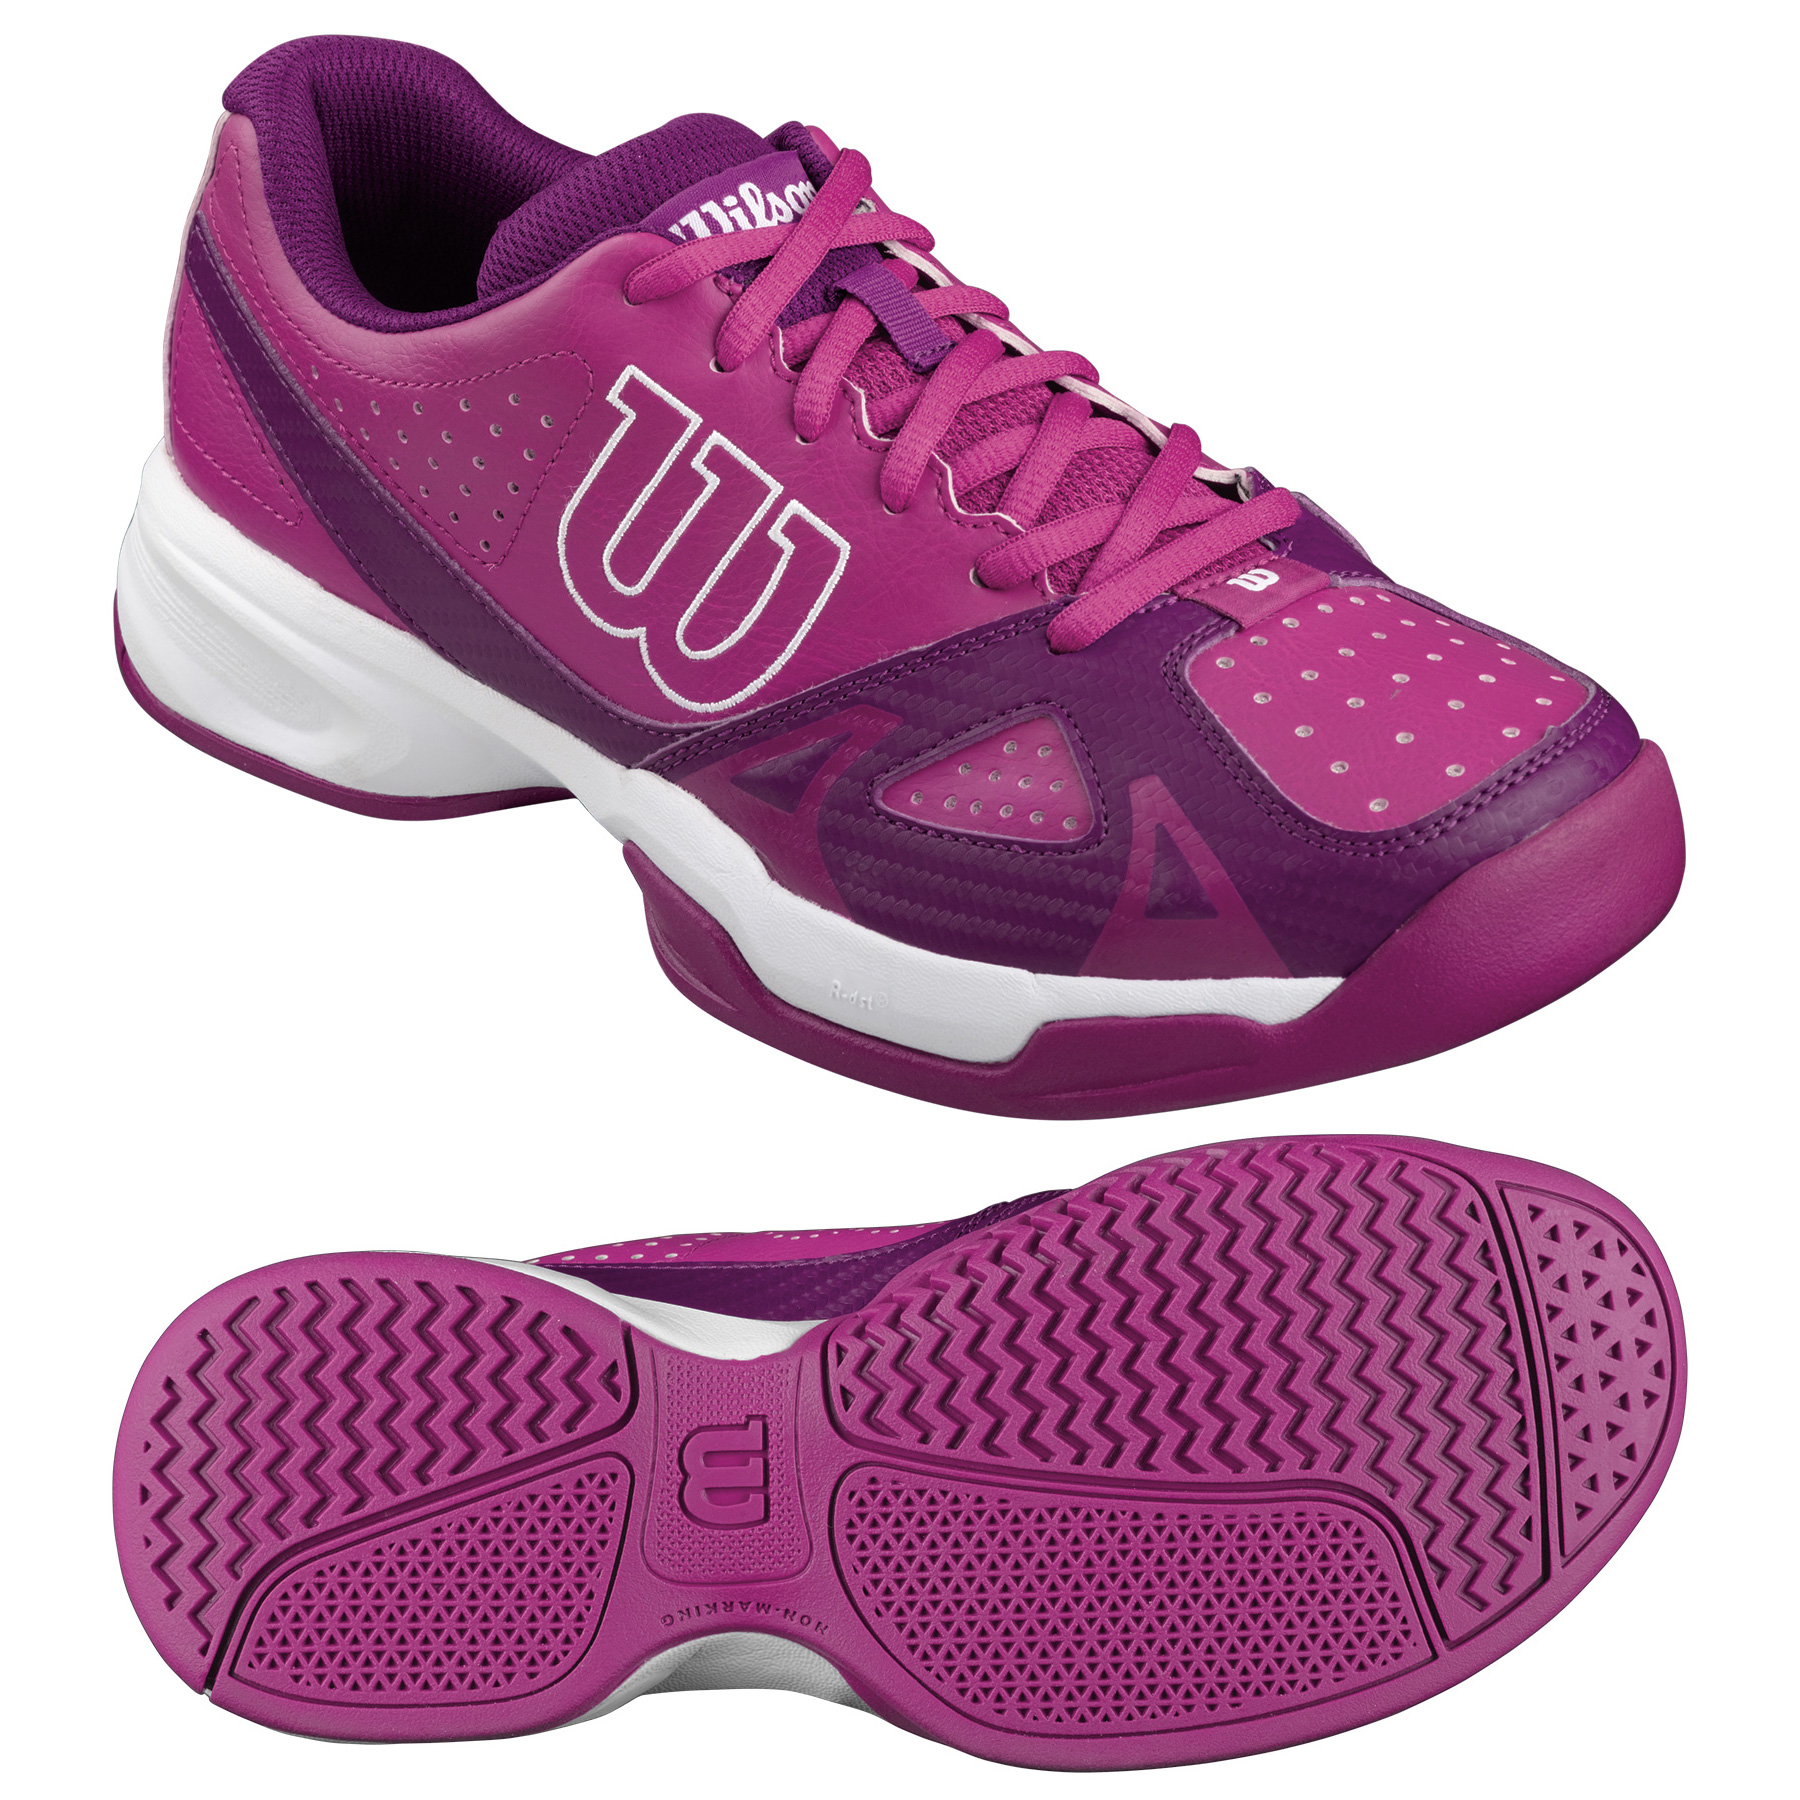 wilson open 2 0 tennis shoes pink white 5